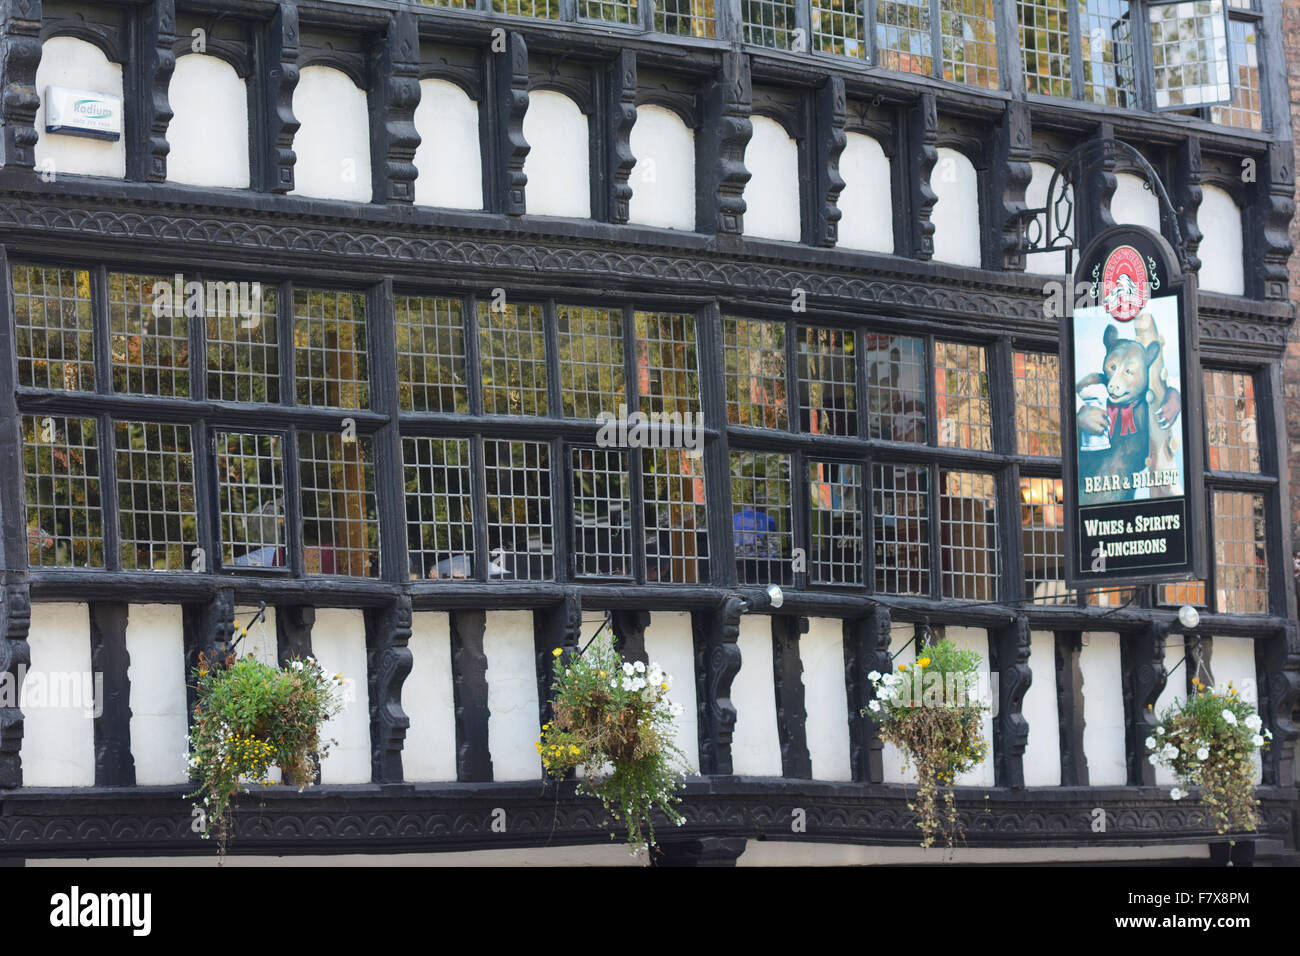 Chester Historic Bear and Billet public house by Bridgegate on Lower Bridge Street in the historic walled city of - Stock Image